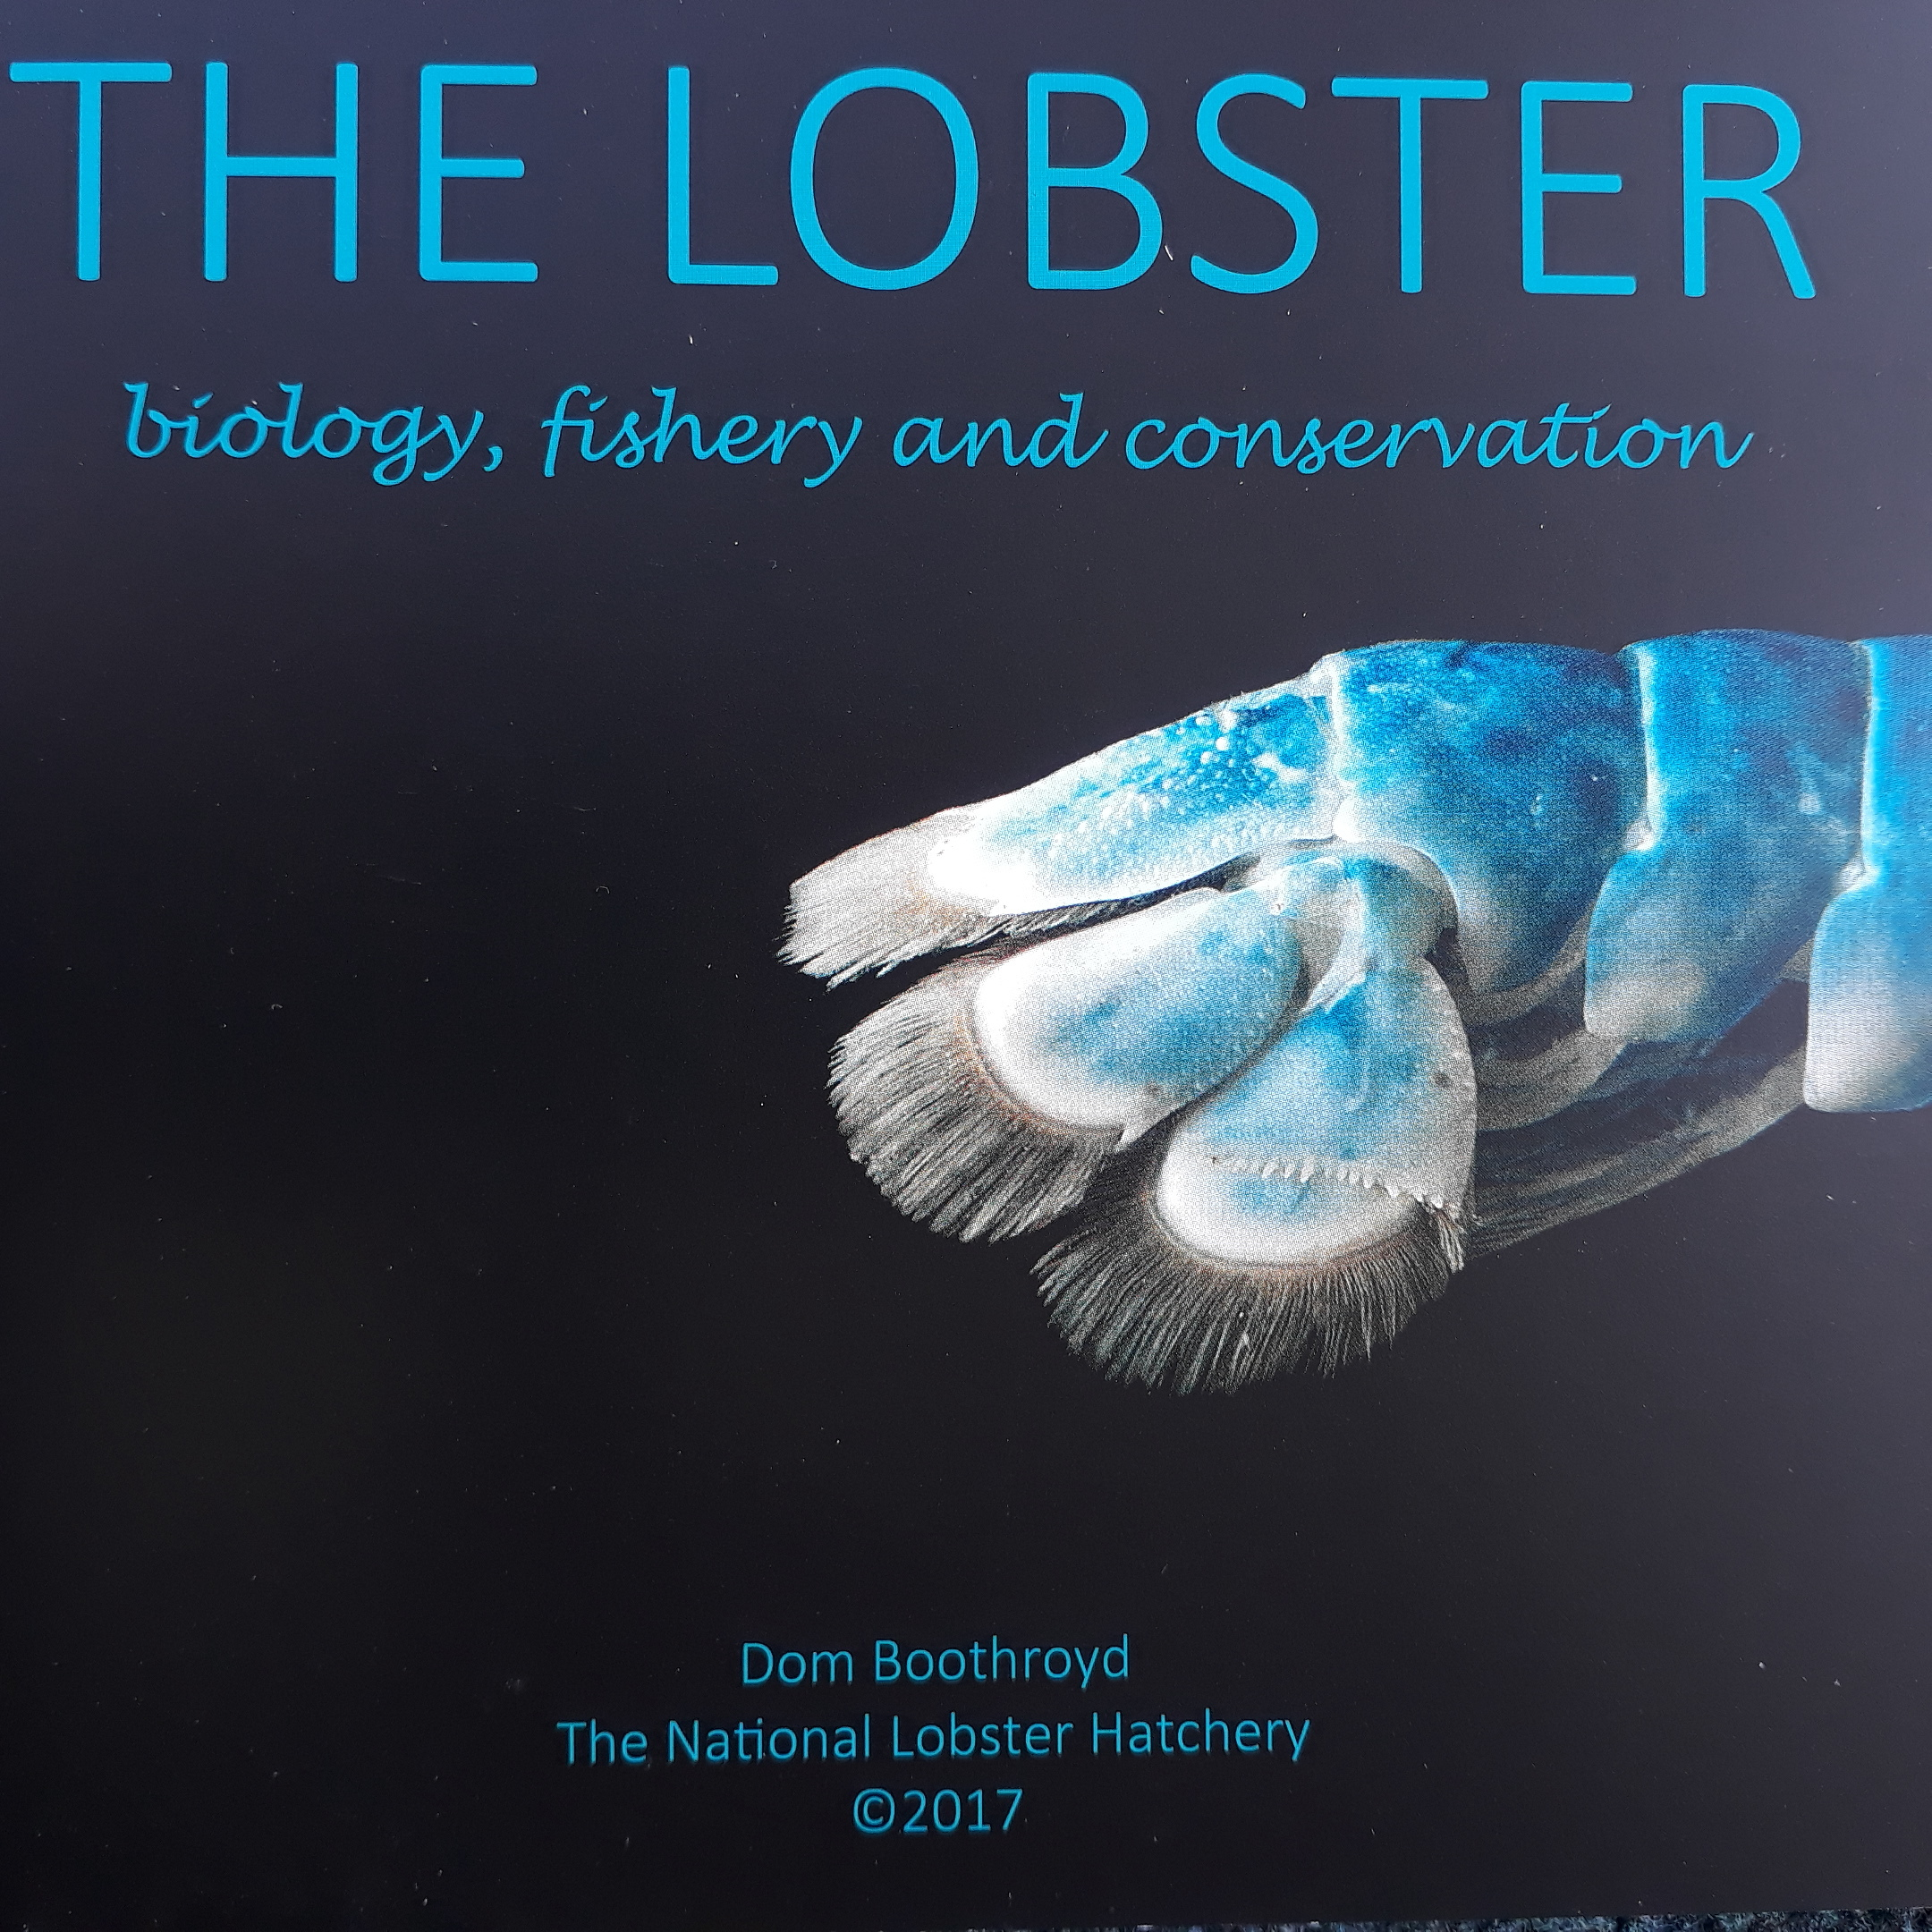 Adopt a Lobster (family)